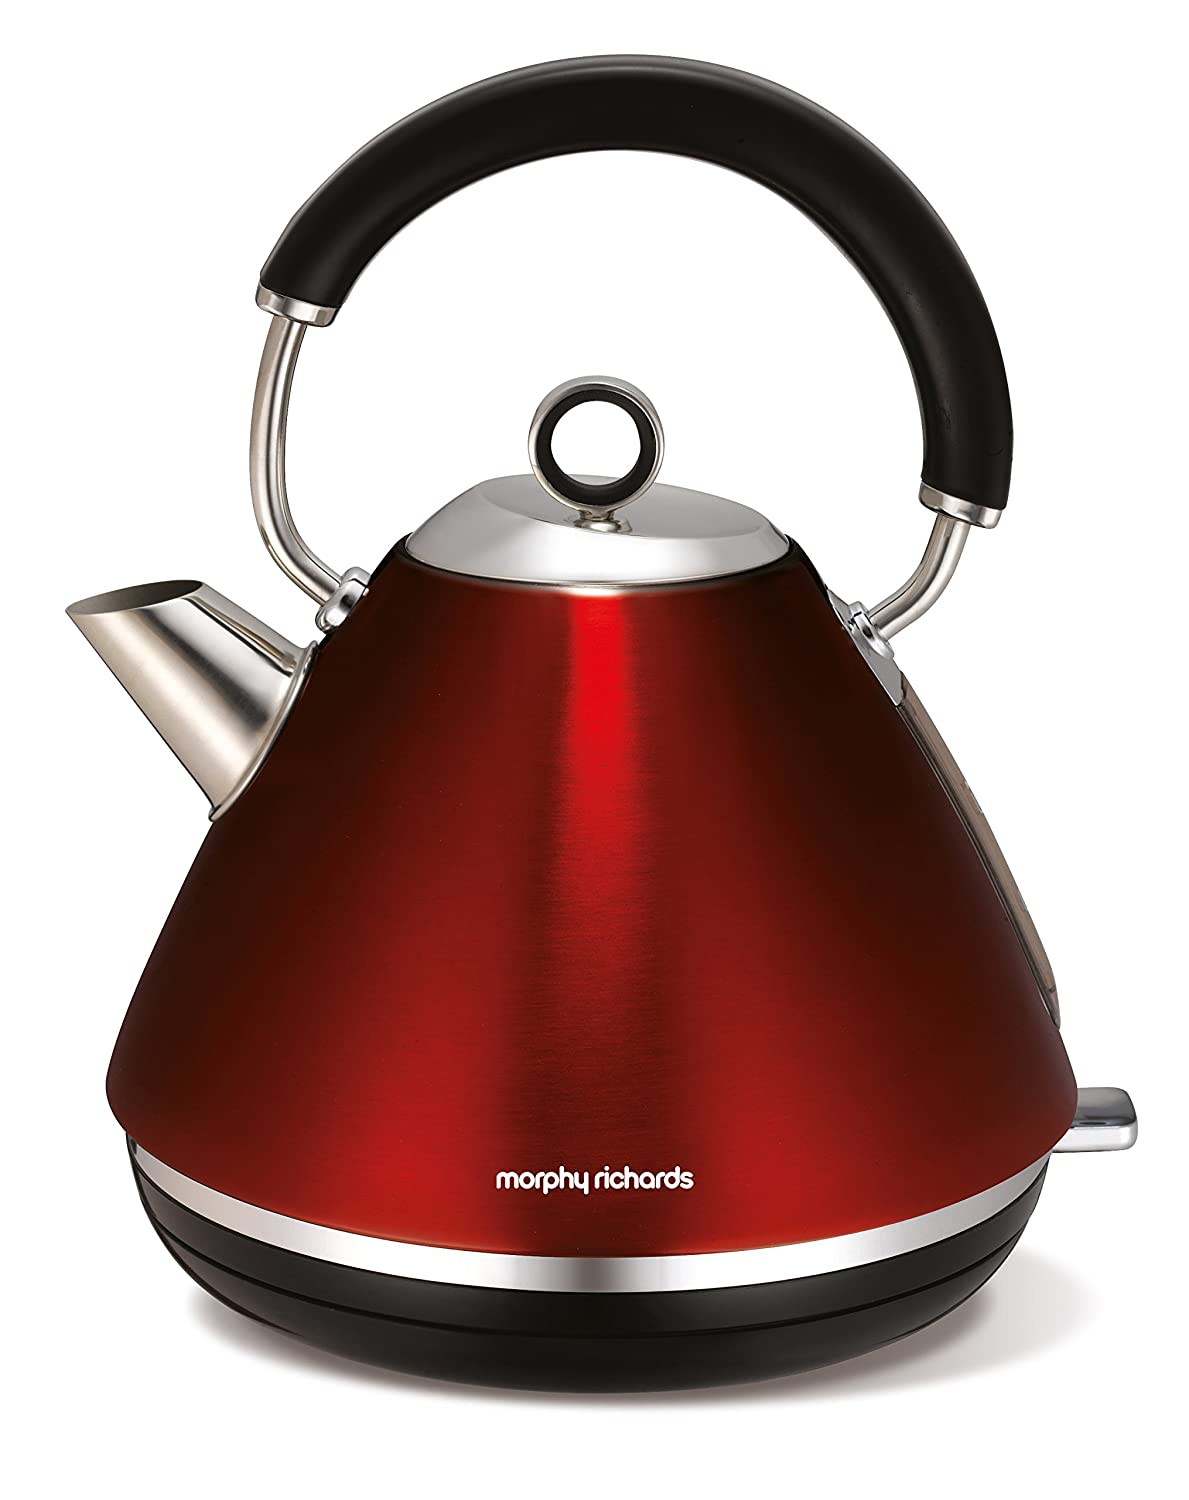 Morphy Richards Accents bollitore elettrico pryramide Bianco